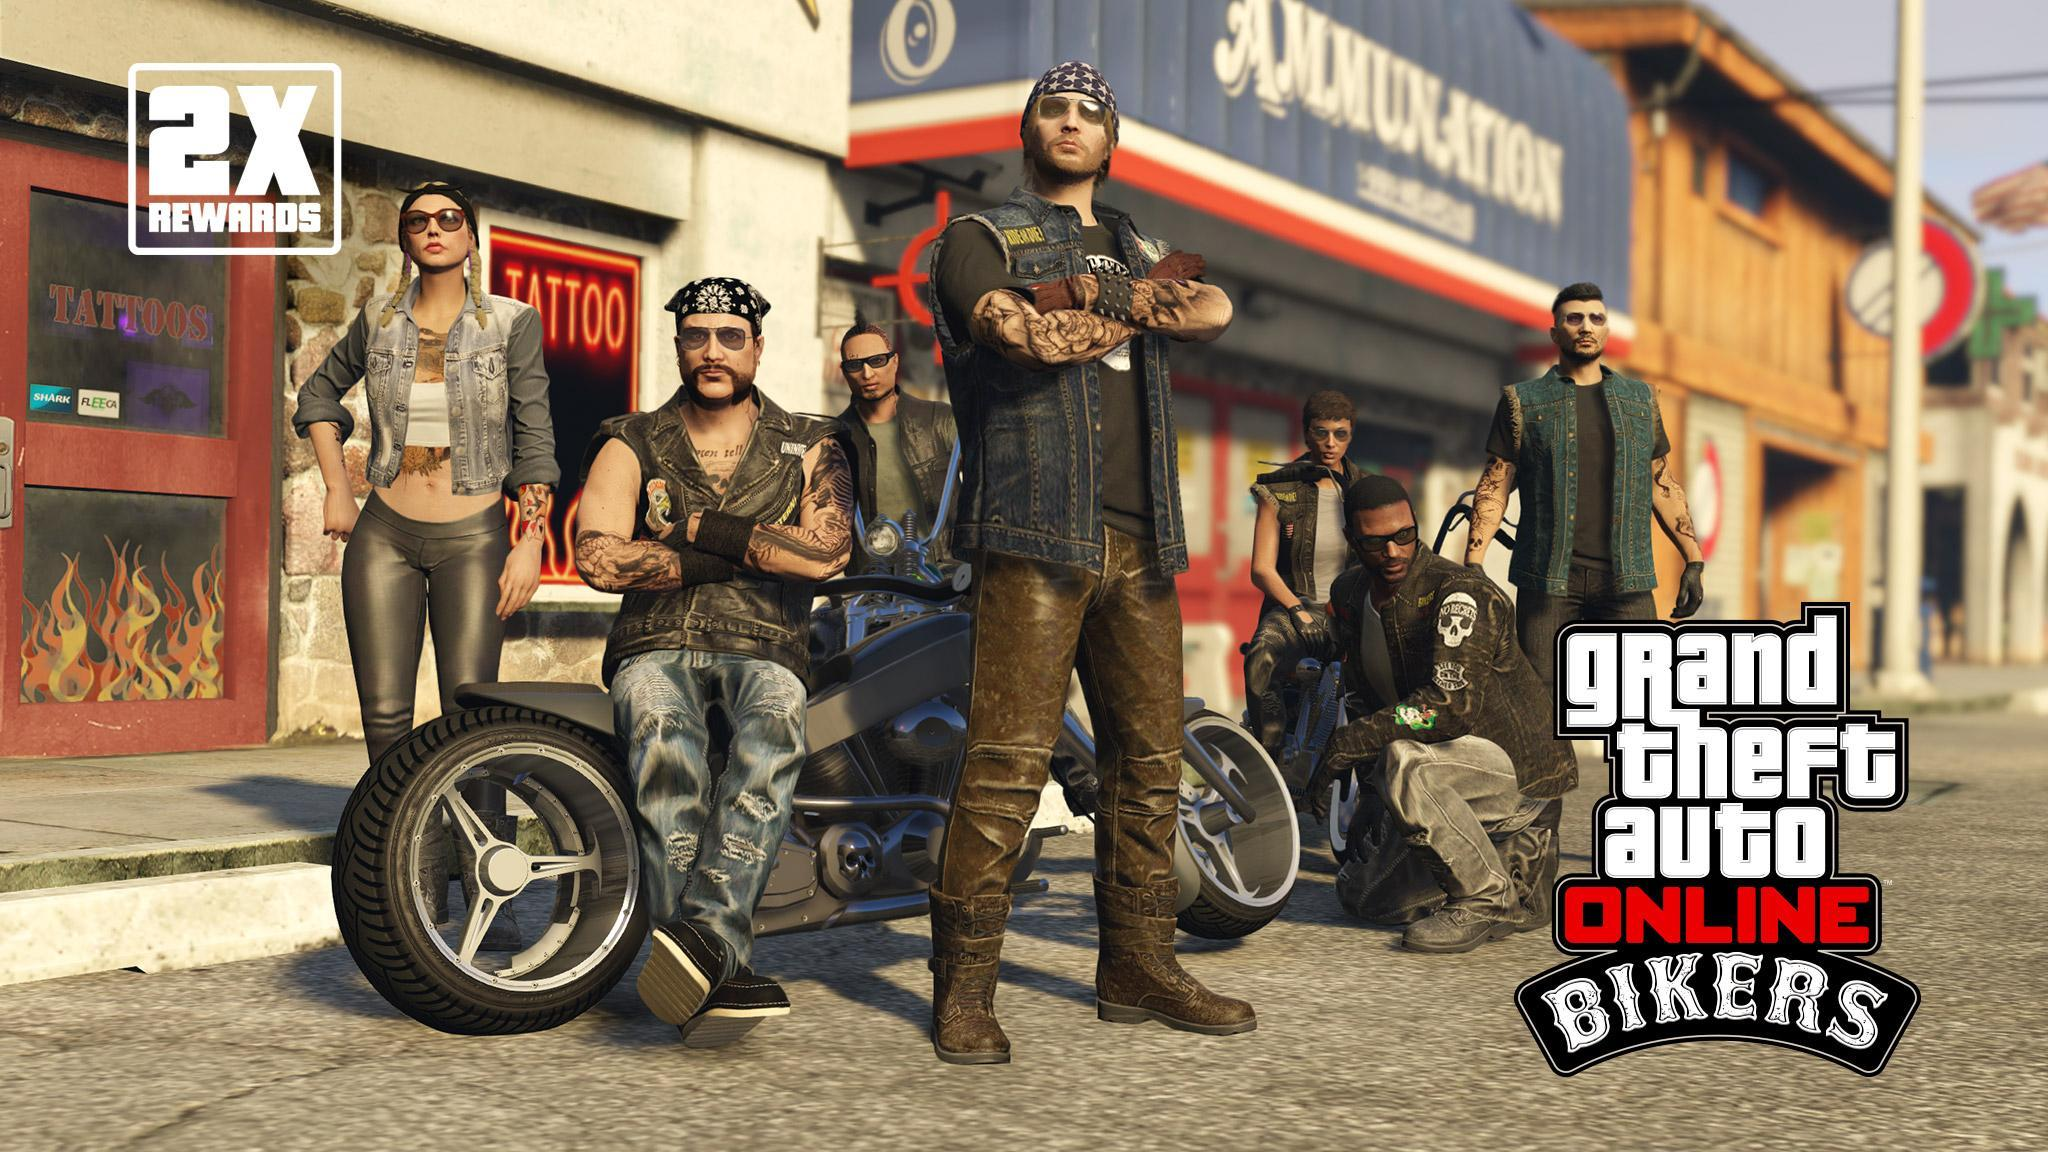 Gta Online Bikers Week With New Bonuses Discounts More Grand Theft Auto V News News Updates